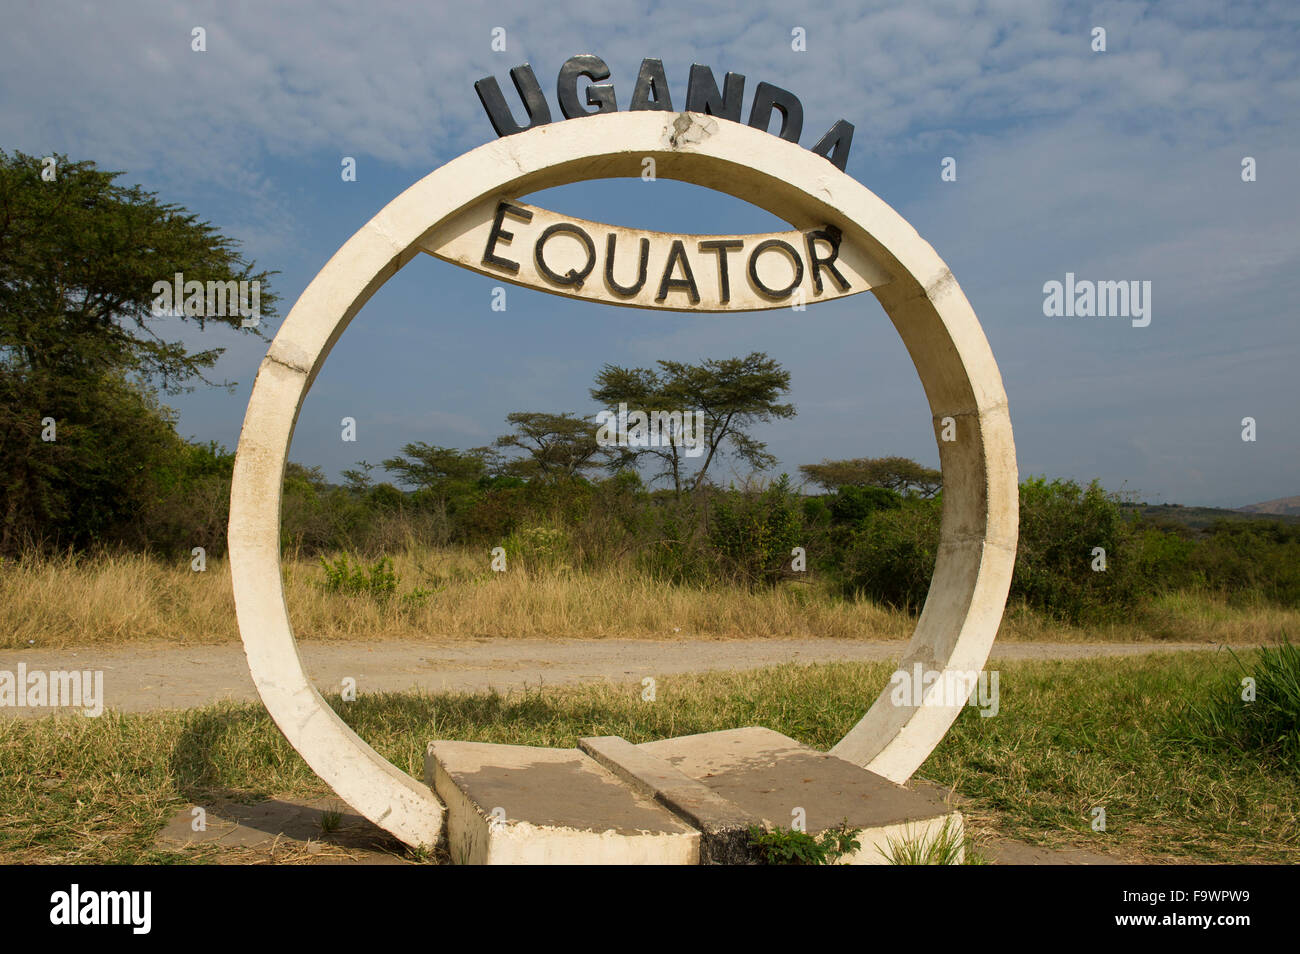 Équateur, Ouganda Photo Stock